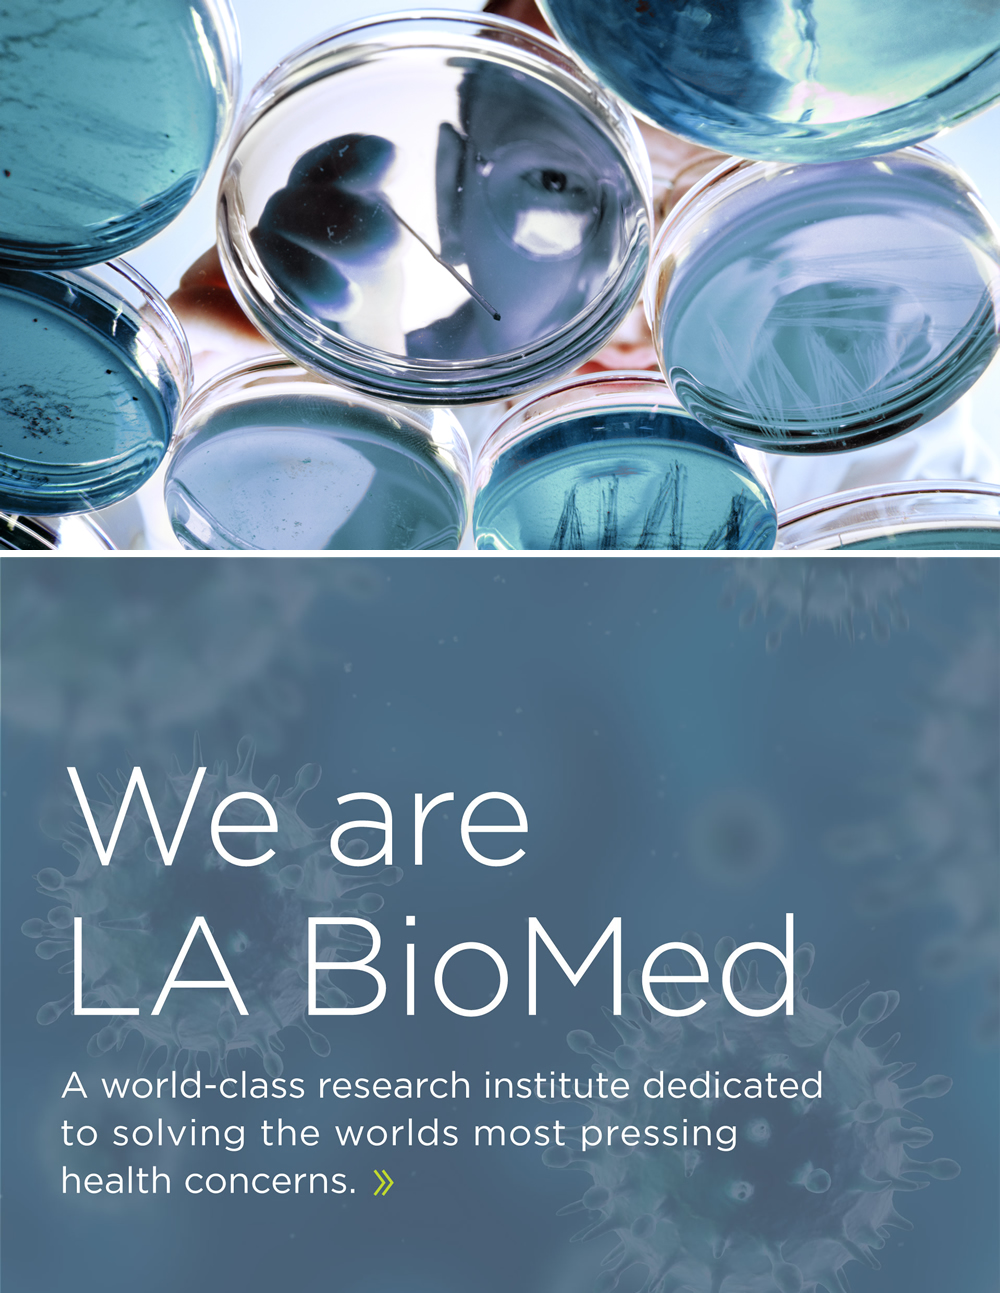 We are LA BioMed. A world-class research institute dedicated to solving the worlds most pressing health concerns.